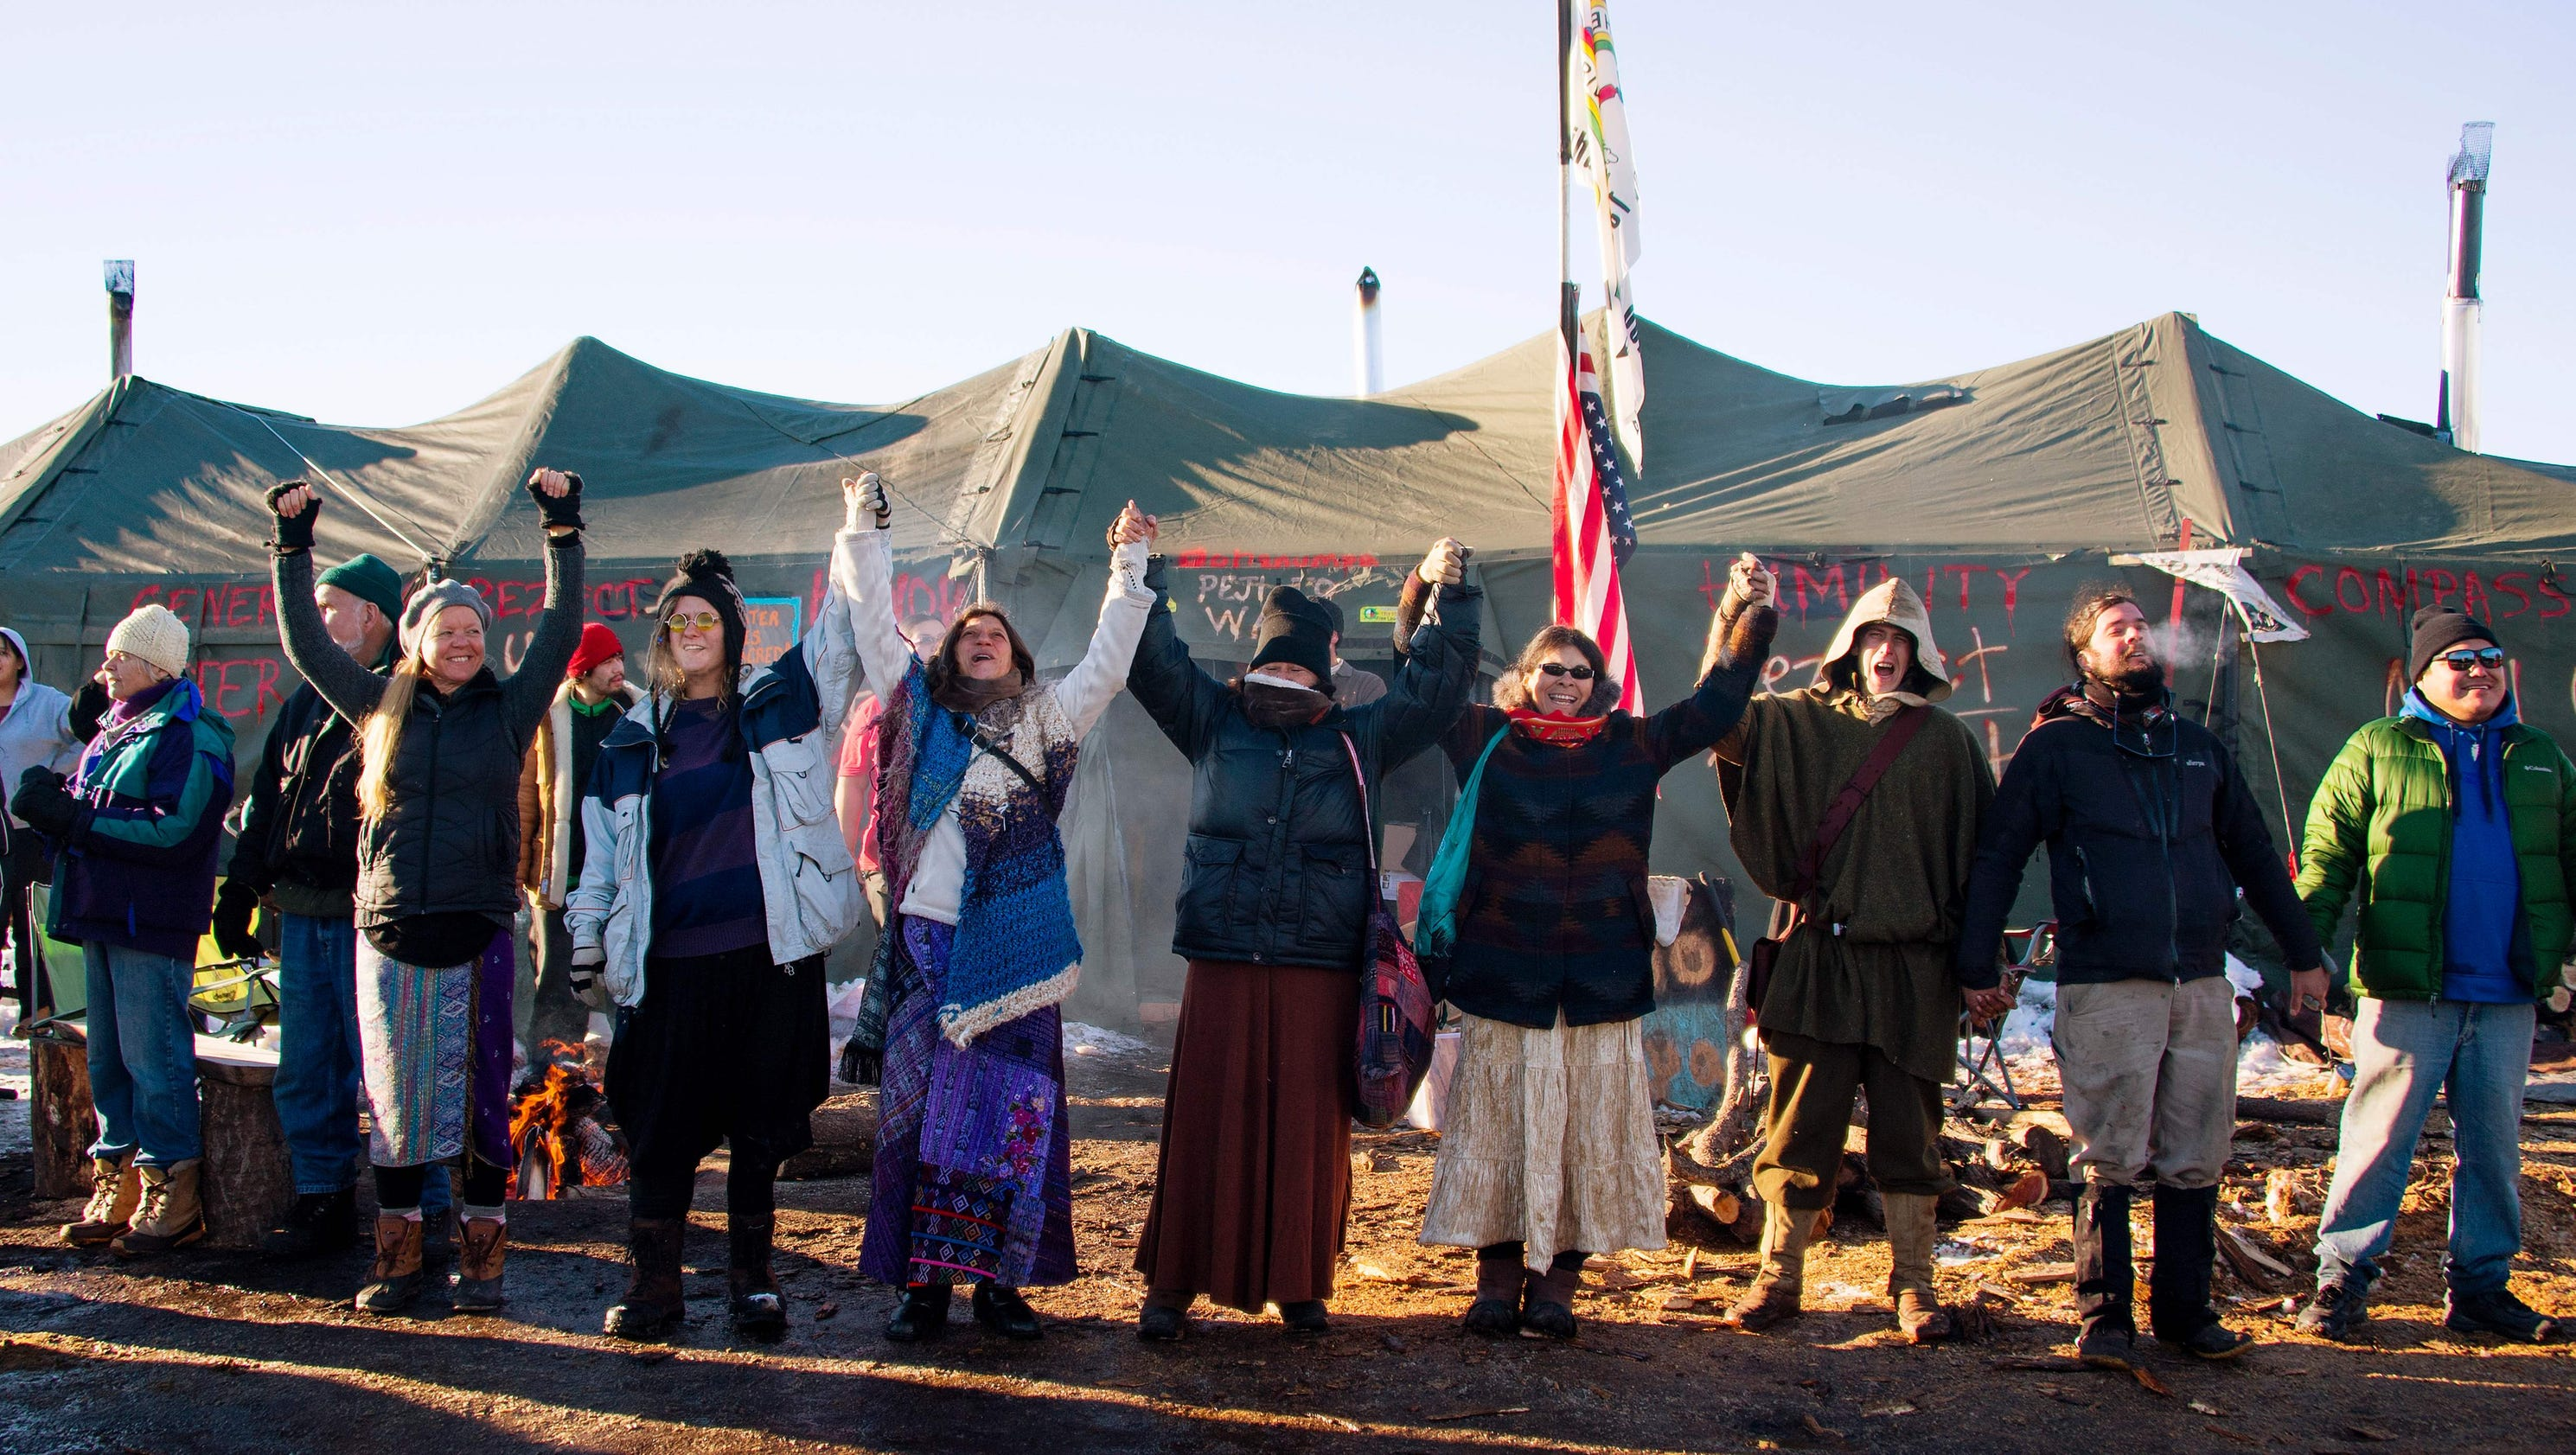 In North Dakota, chance for police and protesters to begin new dialogue: Column